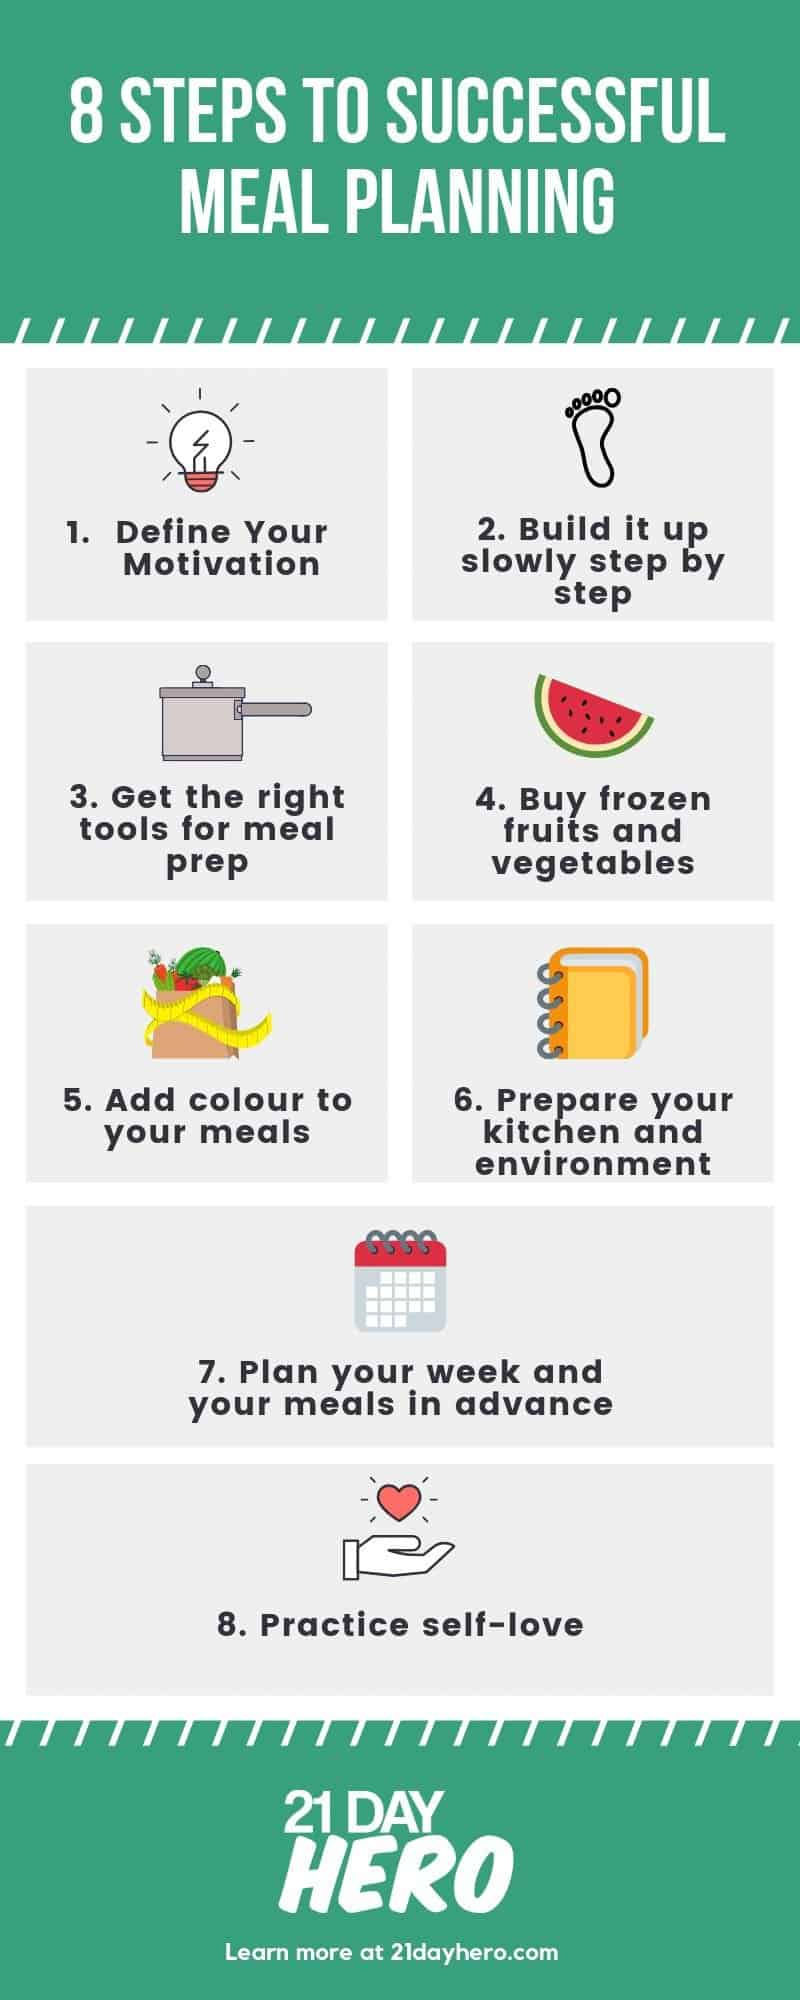 8 steps to successful meal planning